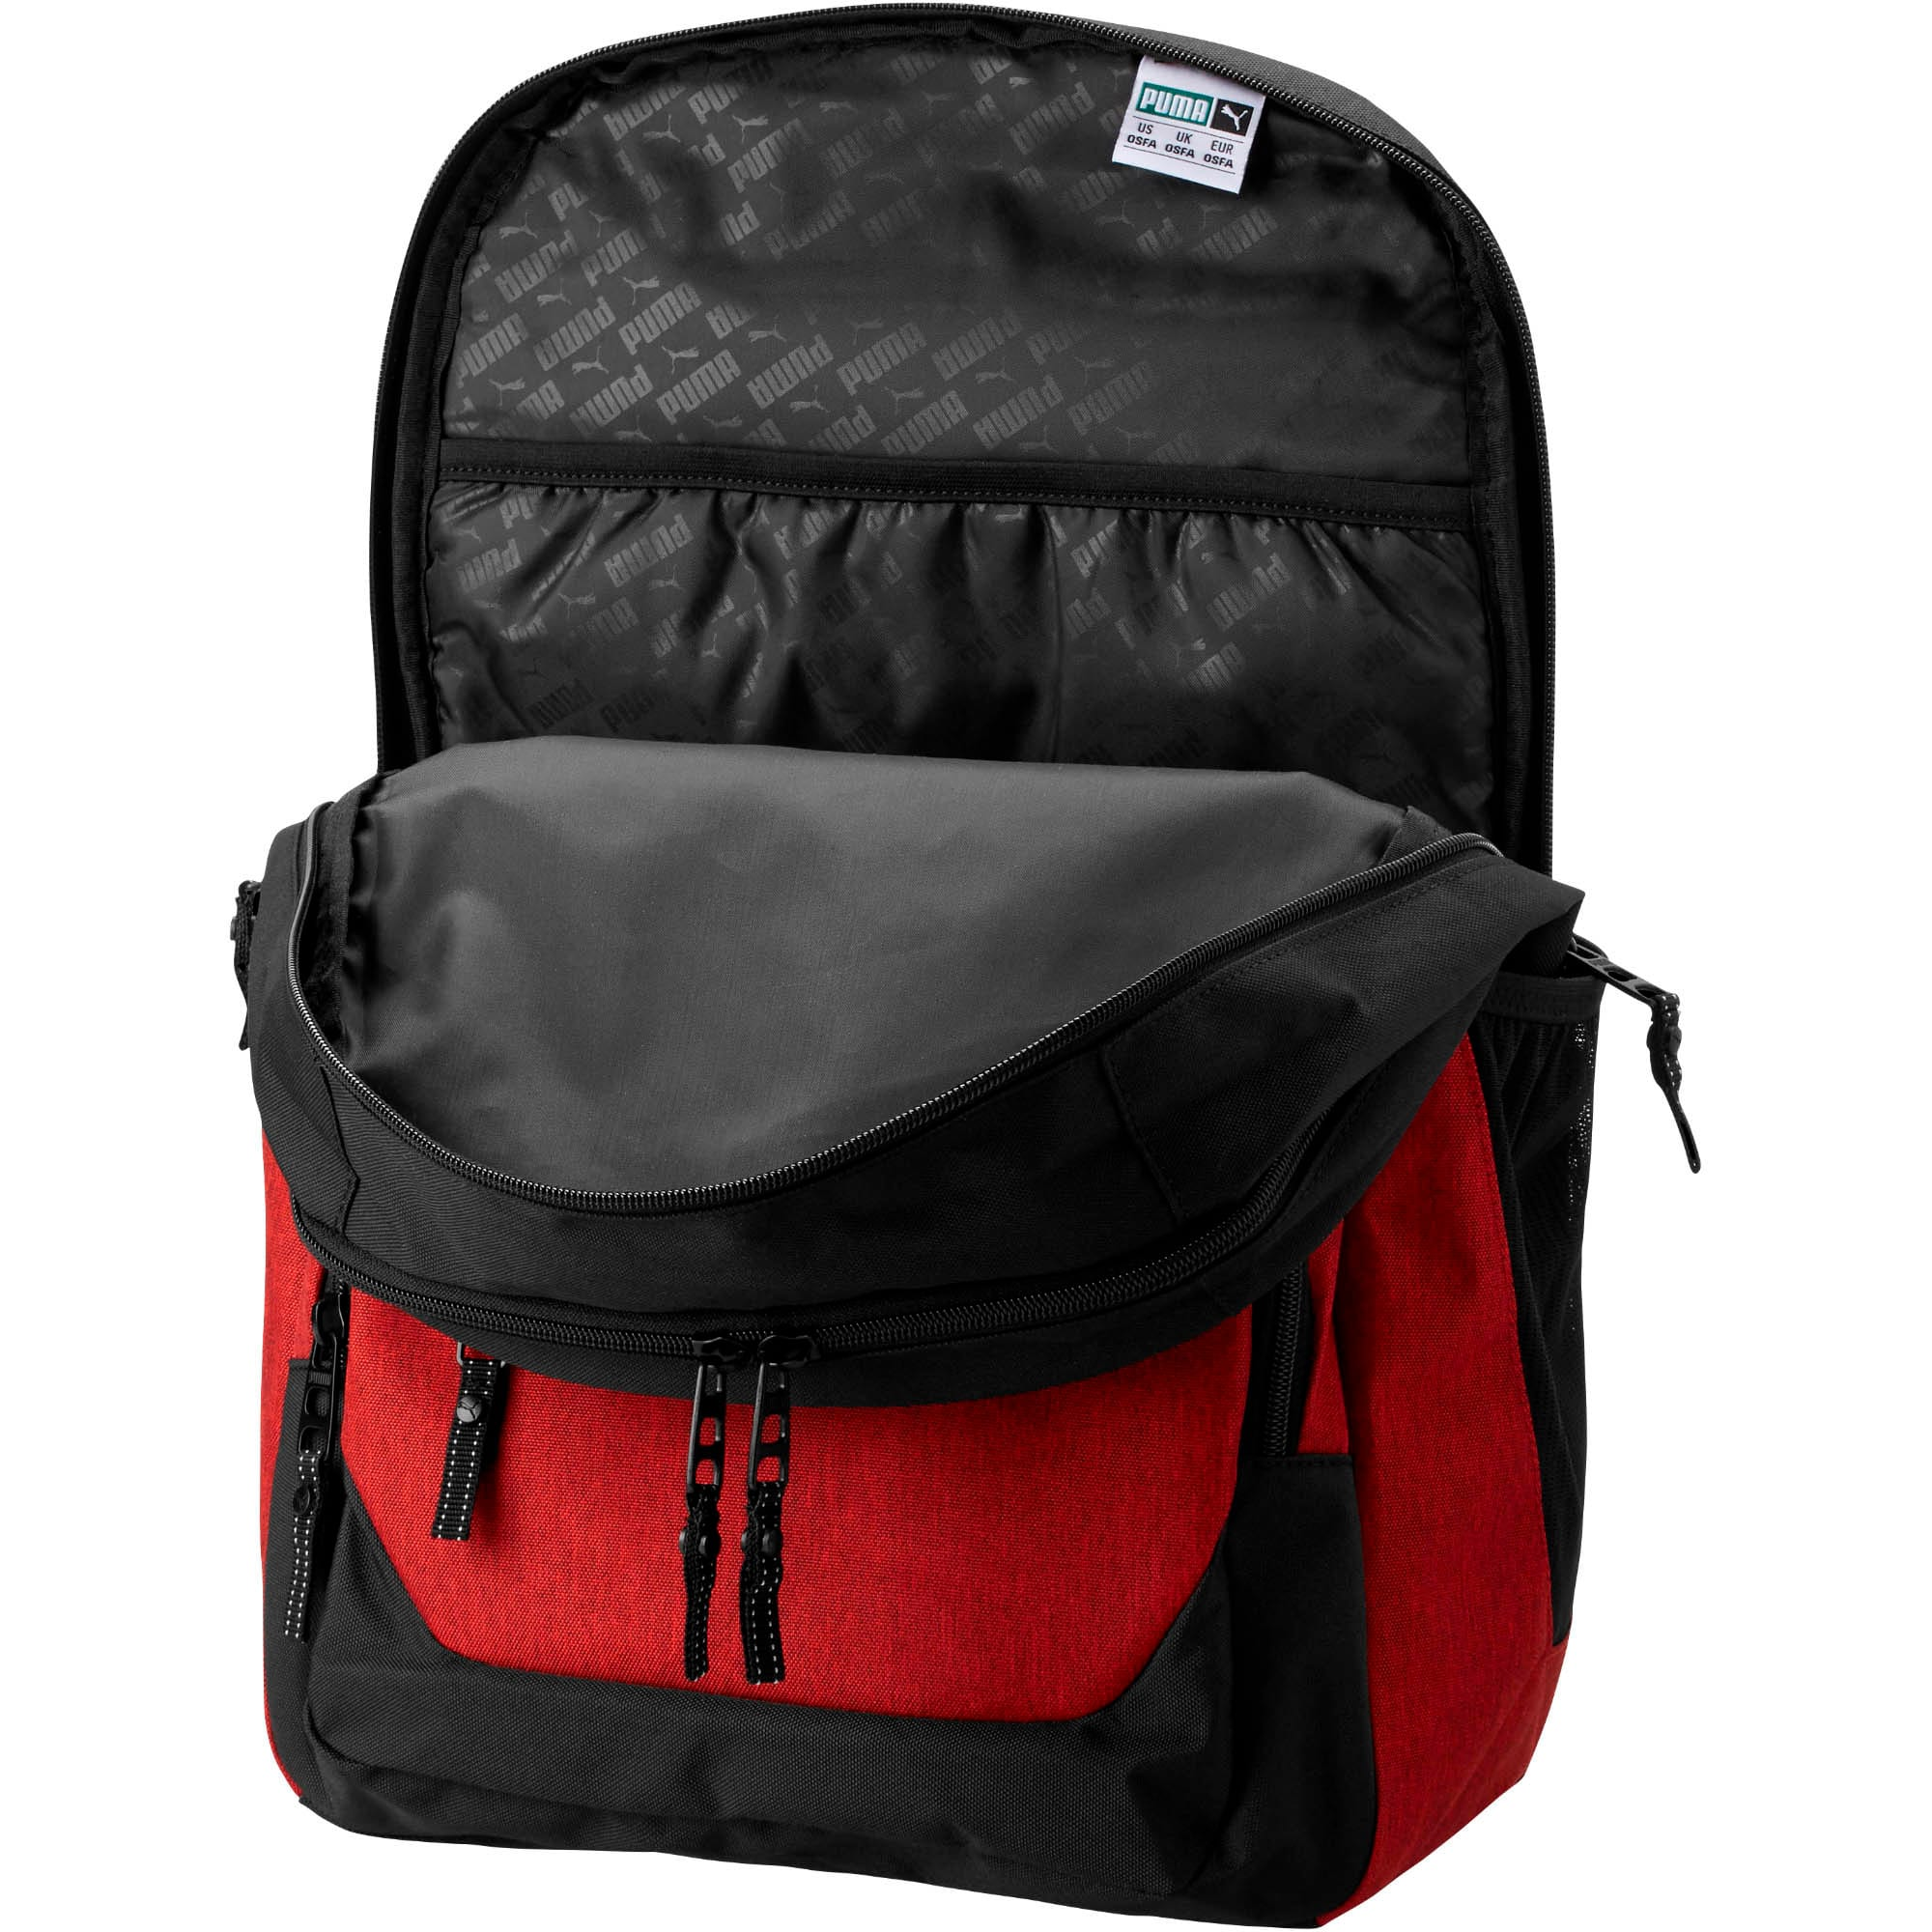 Thumbnail 2 of Puma Everready Backpack, Red/Black, medium